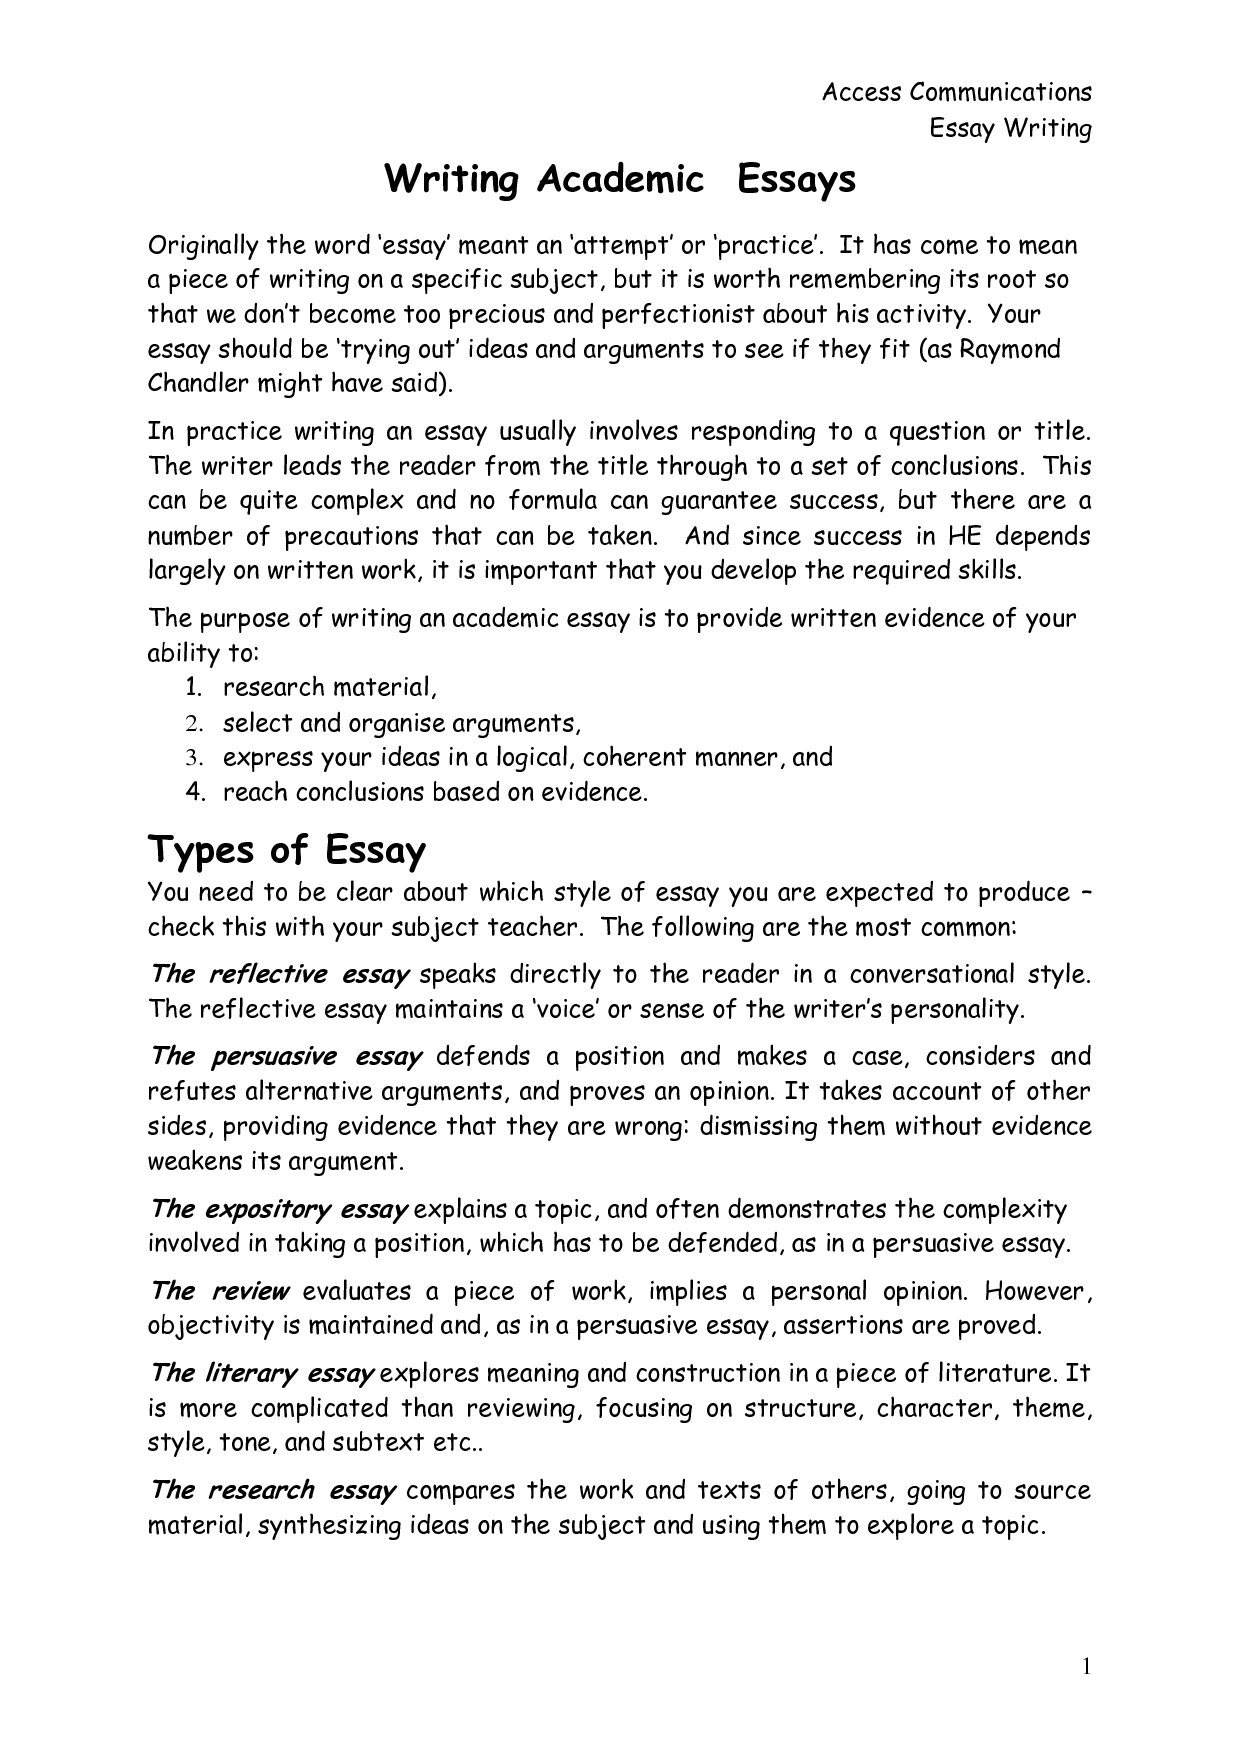 019 Write My Essay For Me Example Surprising Please Generator Free Online Full